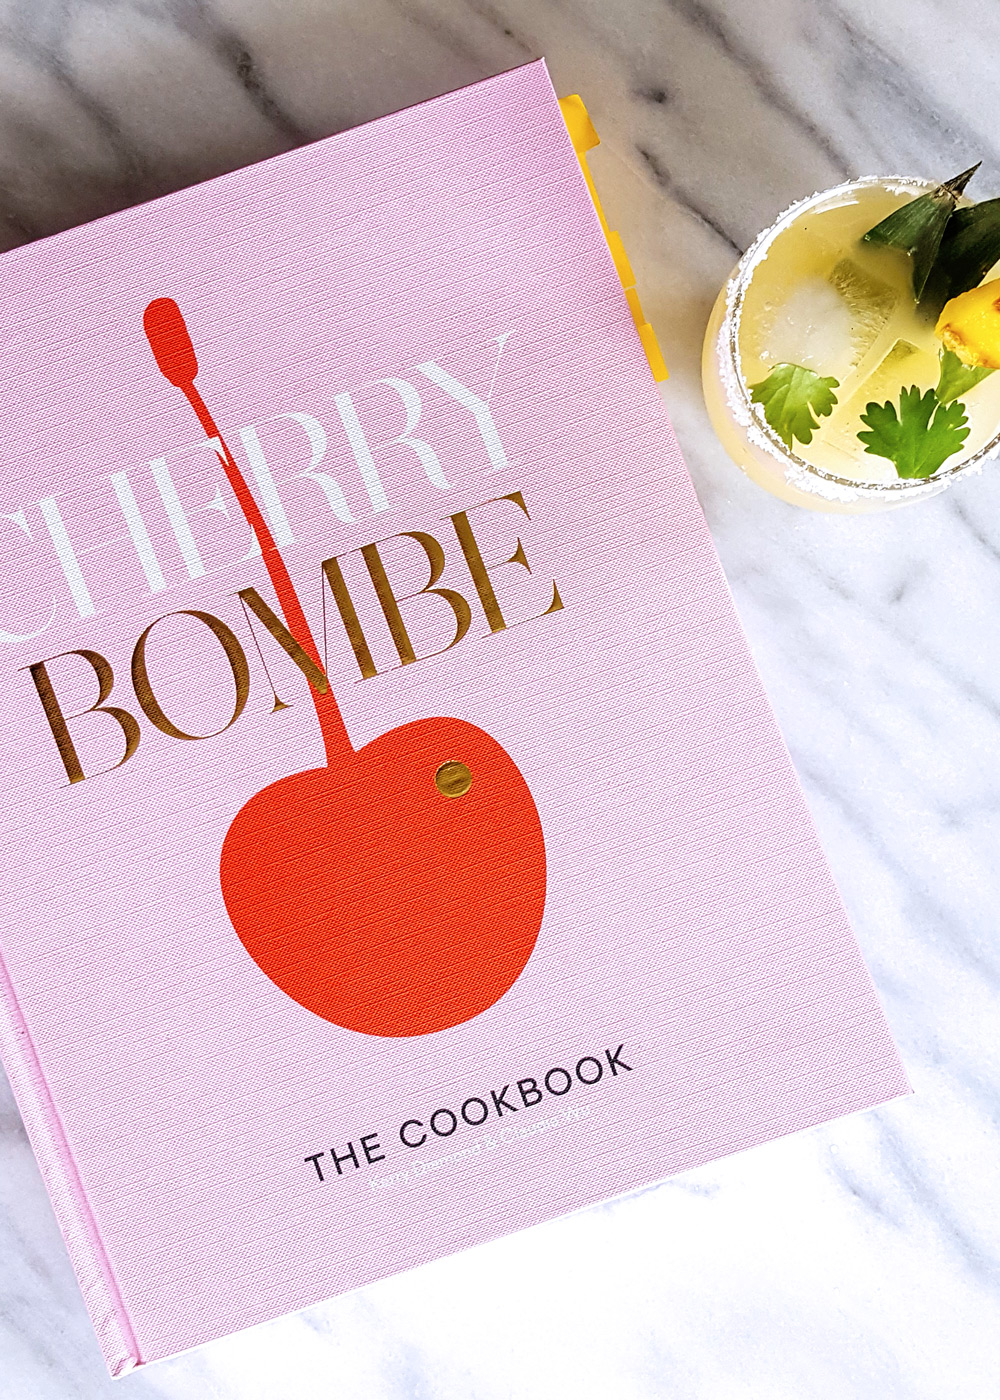 A review of Cherry Bombe: The Cookbook – a celebration of influential women in the food industry and beautiful food through a collection of artfully photographed recipes and personal stories. | FeastInThyme.com #cookbookreview #cherrybombe